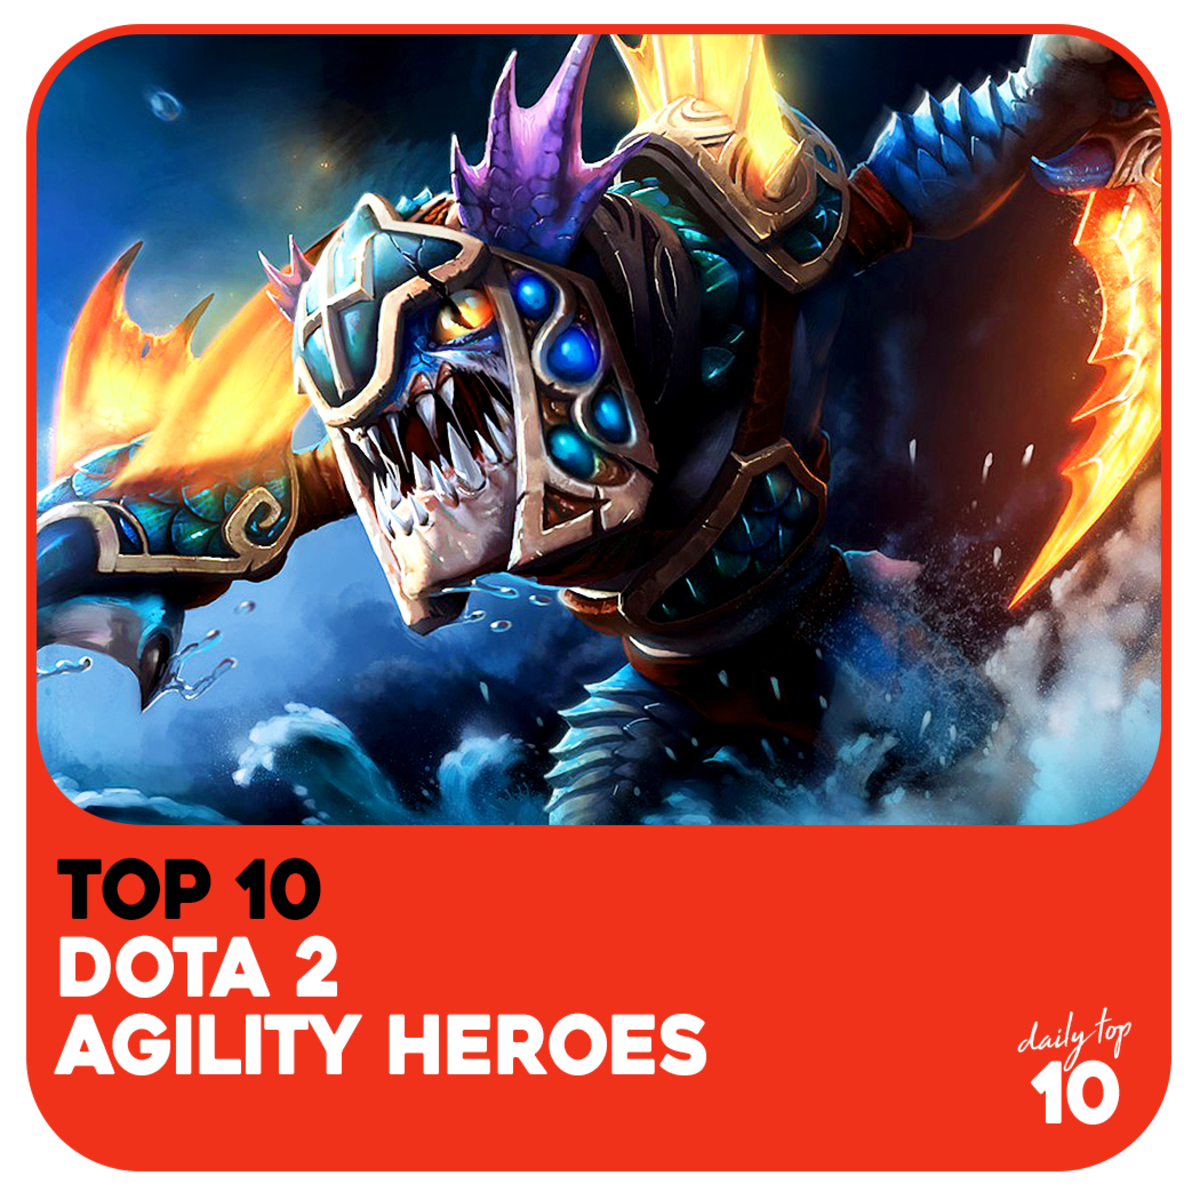 Top 10 Best Agility Dota 2 Heroes With Pictures Updated 2019